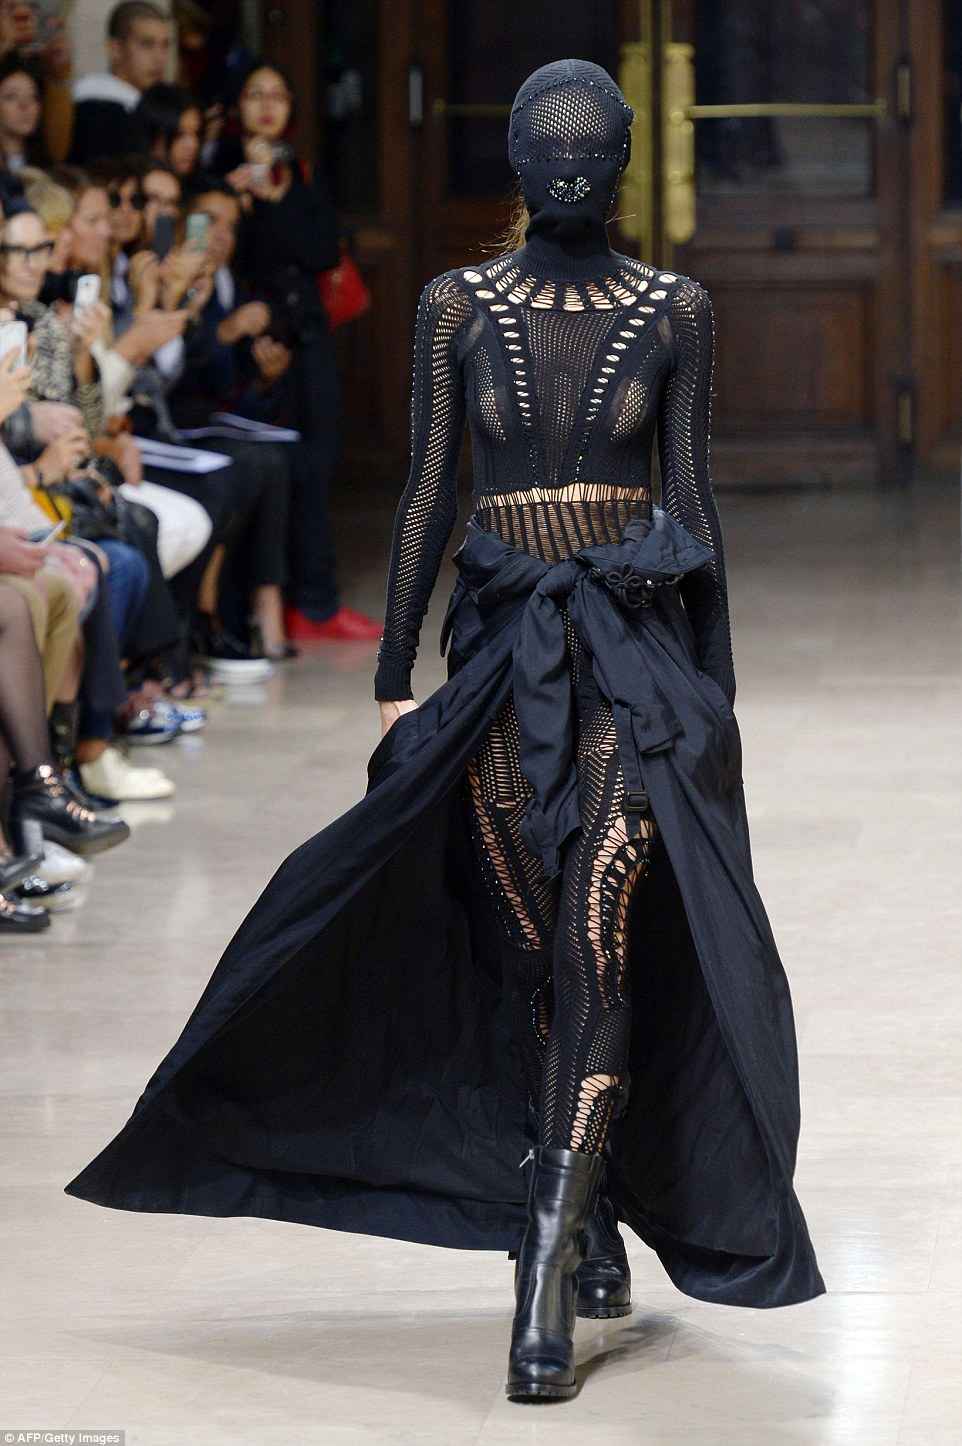 One model turned heads in an all-in-one black crocheted jumpsuit. The attention-grabbing outfit featured a knitted mask with studs in the shape of a pair of lips